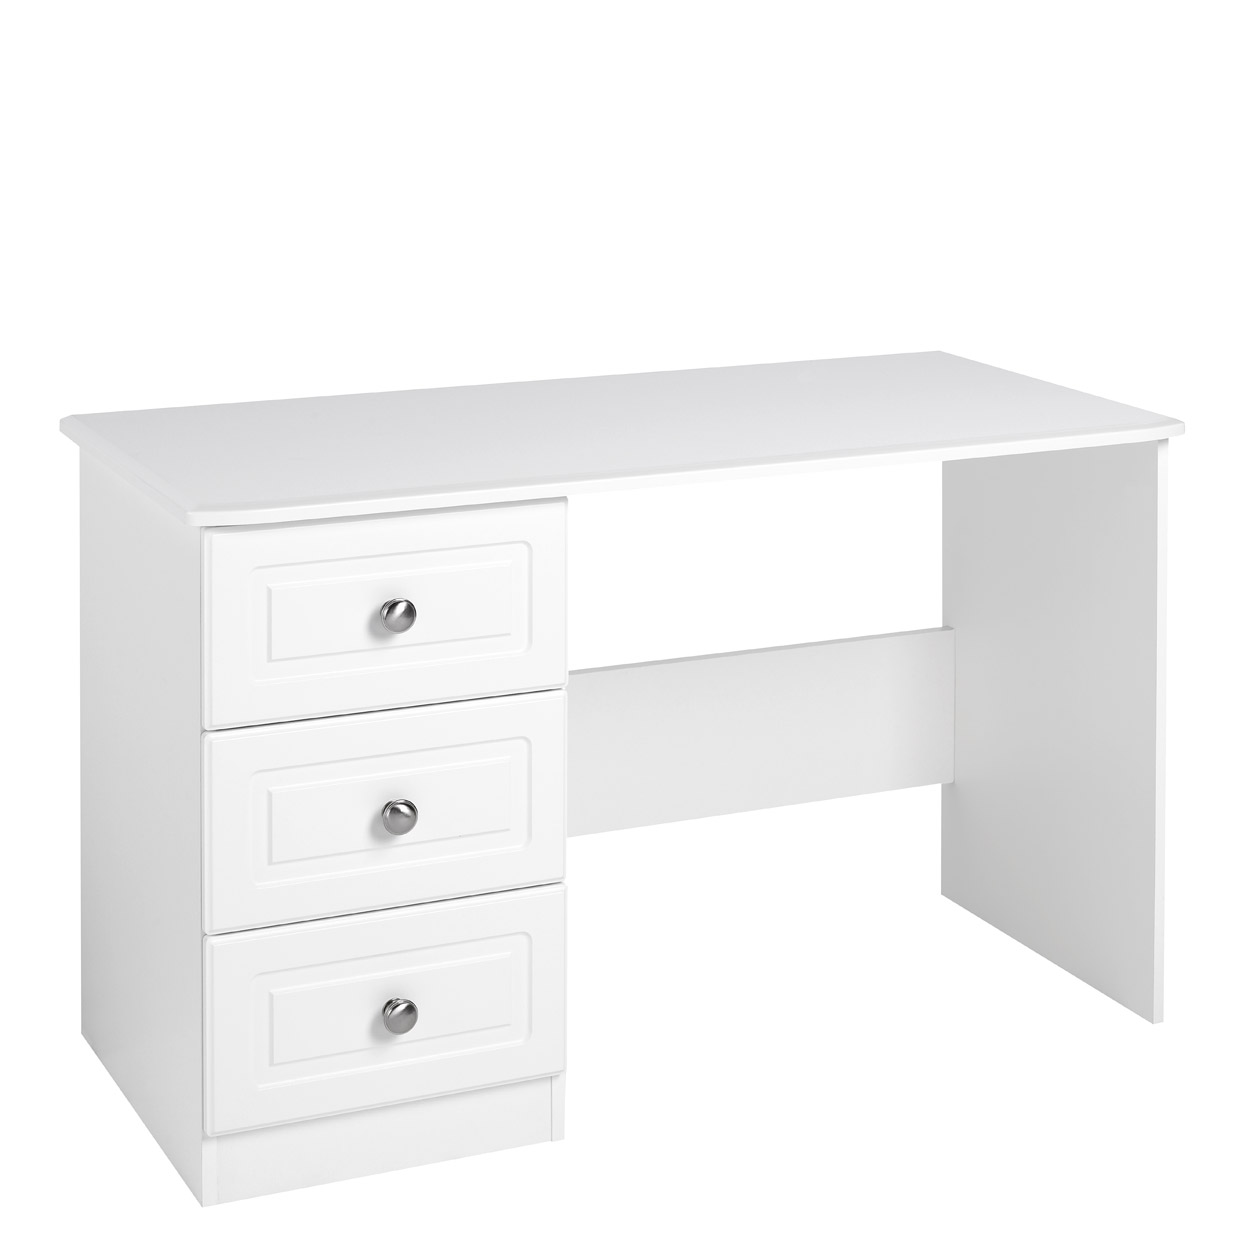 Viz Cent Quality Bedroom Dressing Table - Fully Assembled